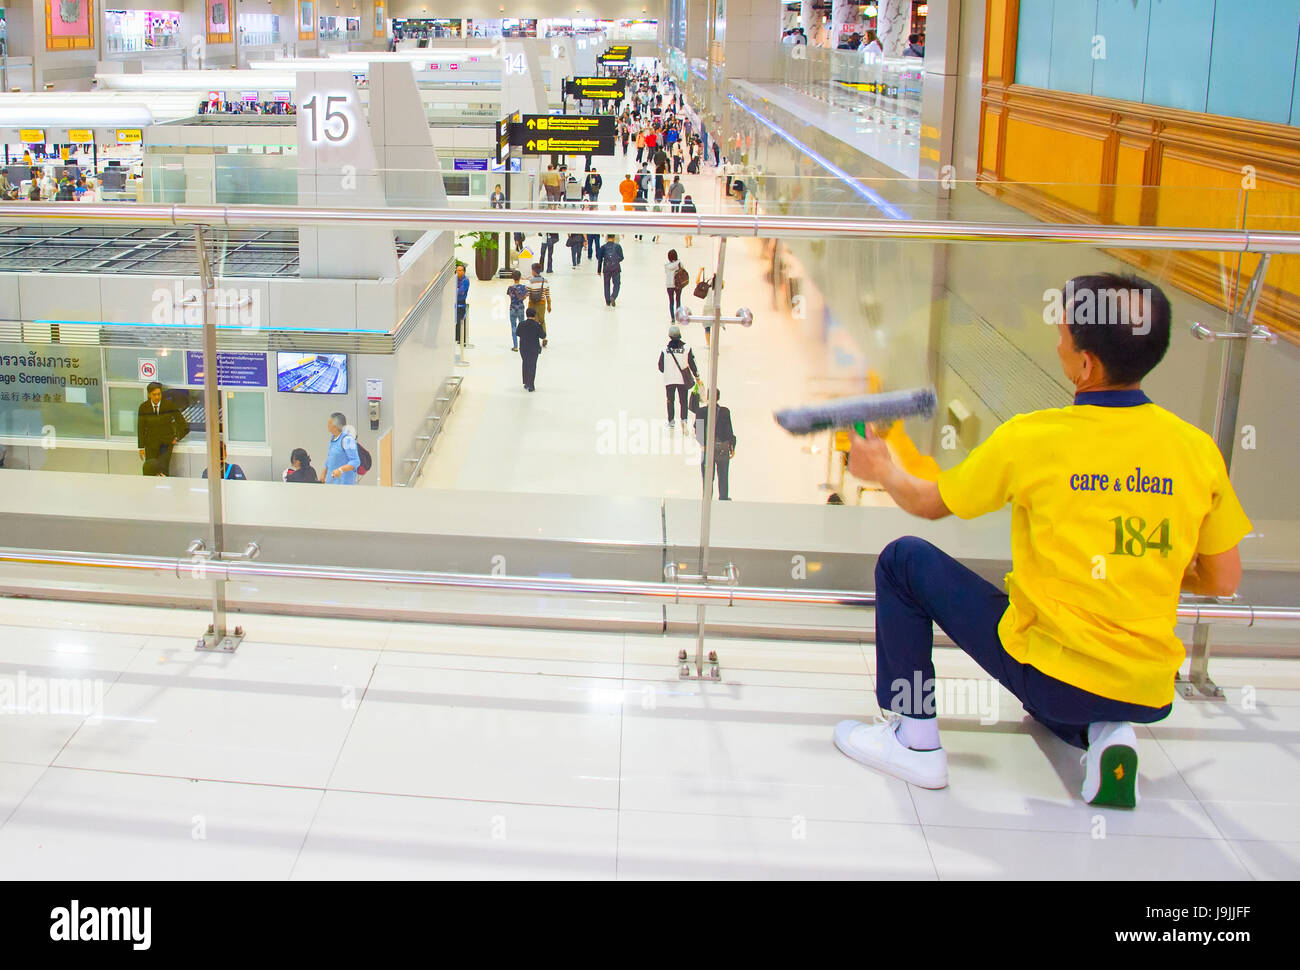 BANGKOK, THAILAND - JAN13, 2017: Cleaning service at work in the Don Mueang International Airport . The airport Stock Photo